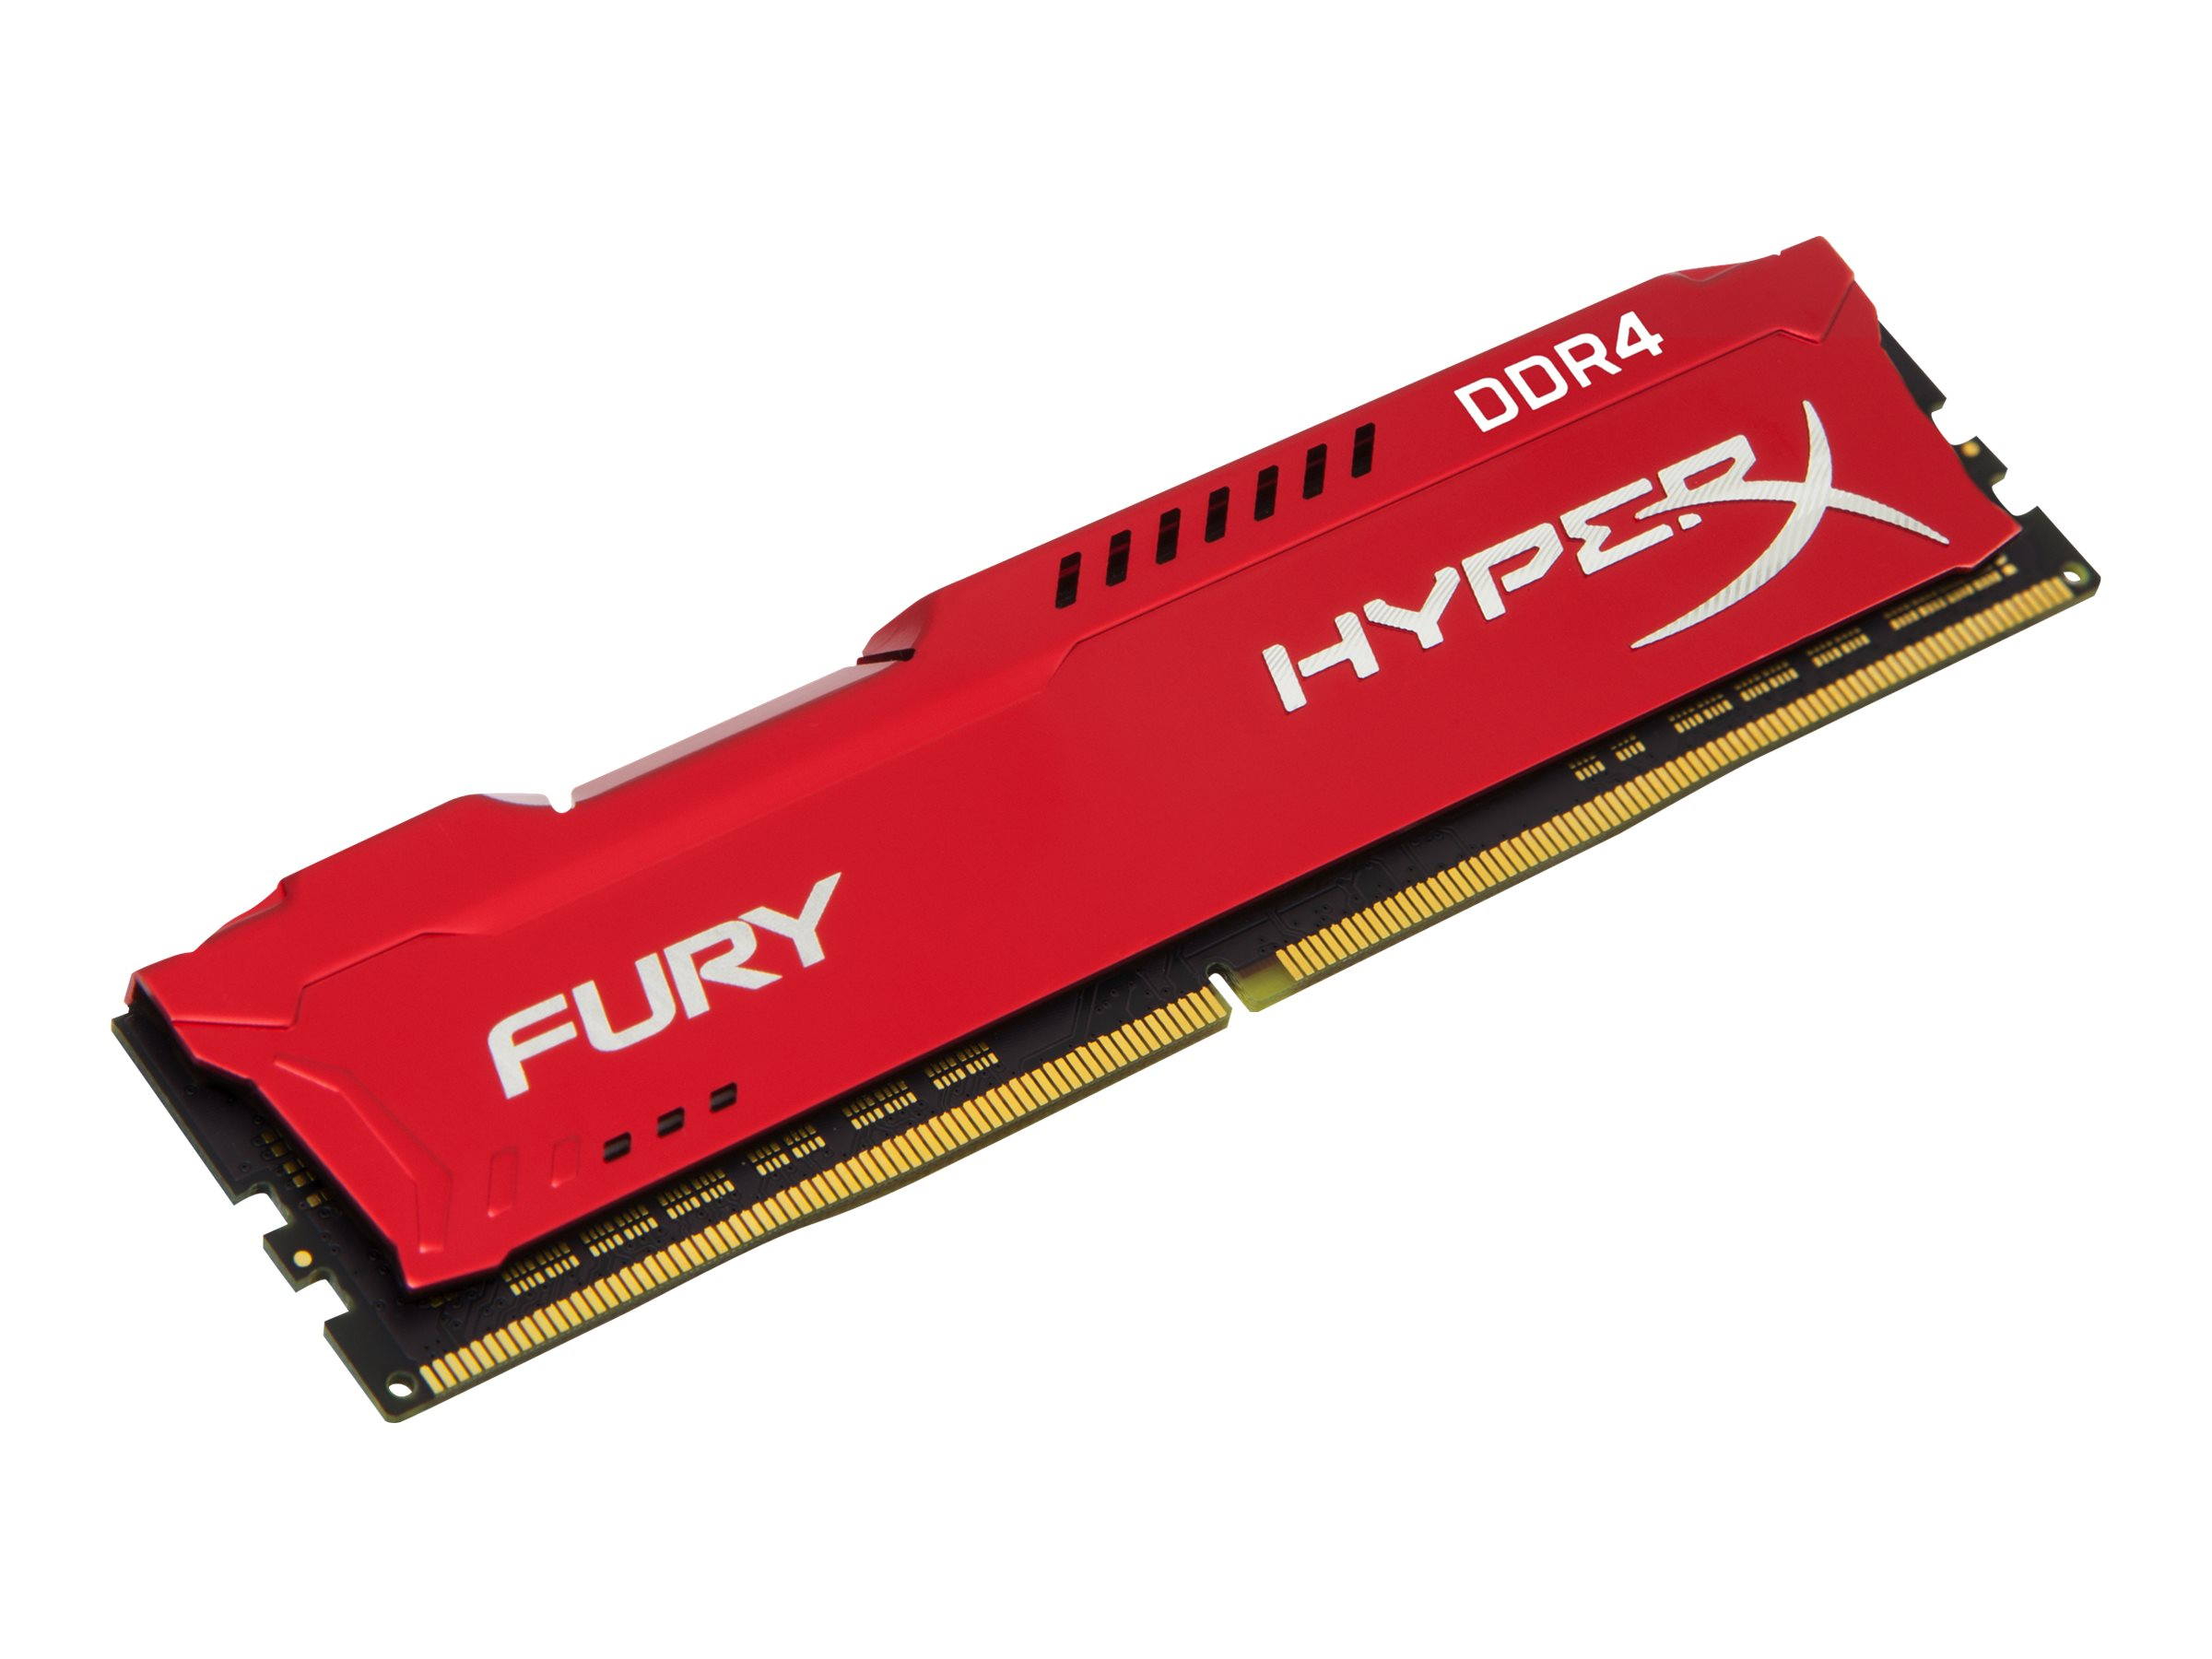 HyperX FURY - DDR4 - 16 GB - DIMM 288-PIN - 3466 MHz / PC4-27700 - CL19